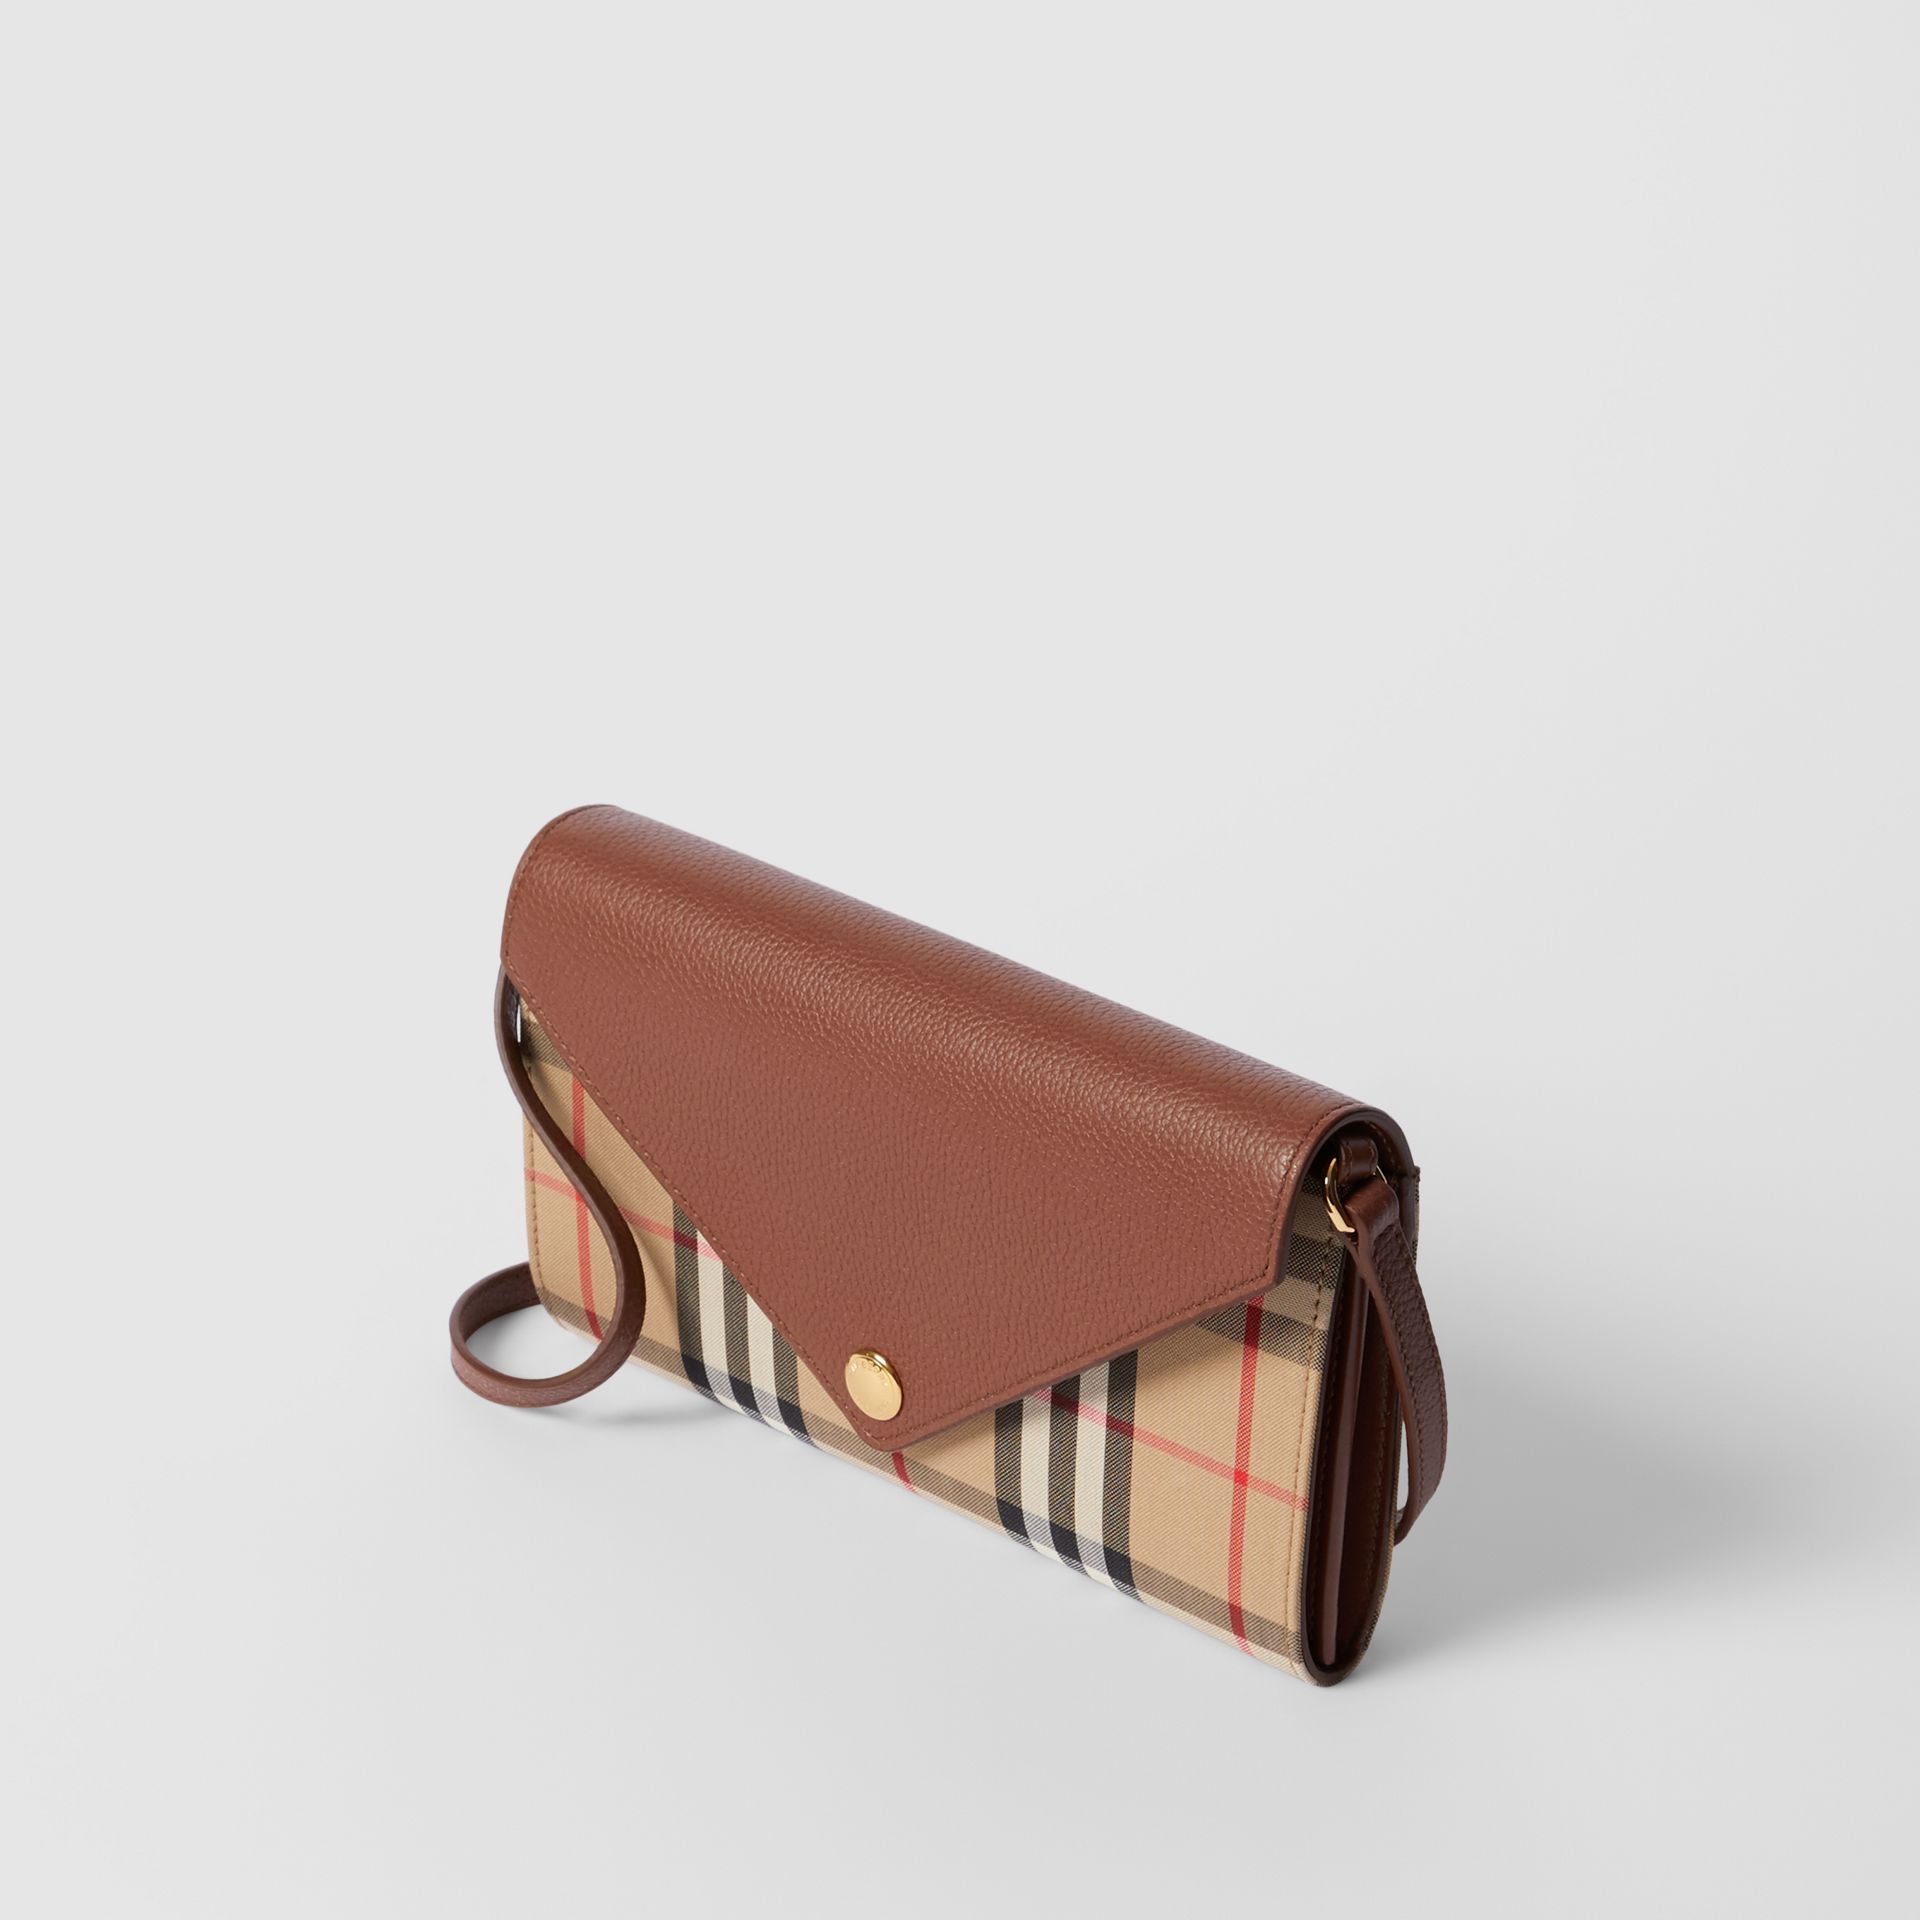 Vintage Check and Leather Wallet with Detachable Strap in Tan - Women | Burberry - gallery image 3